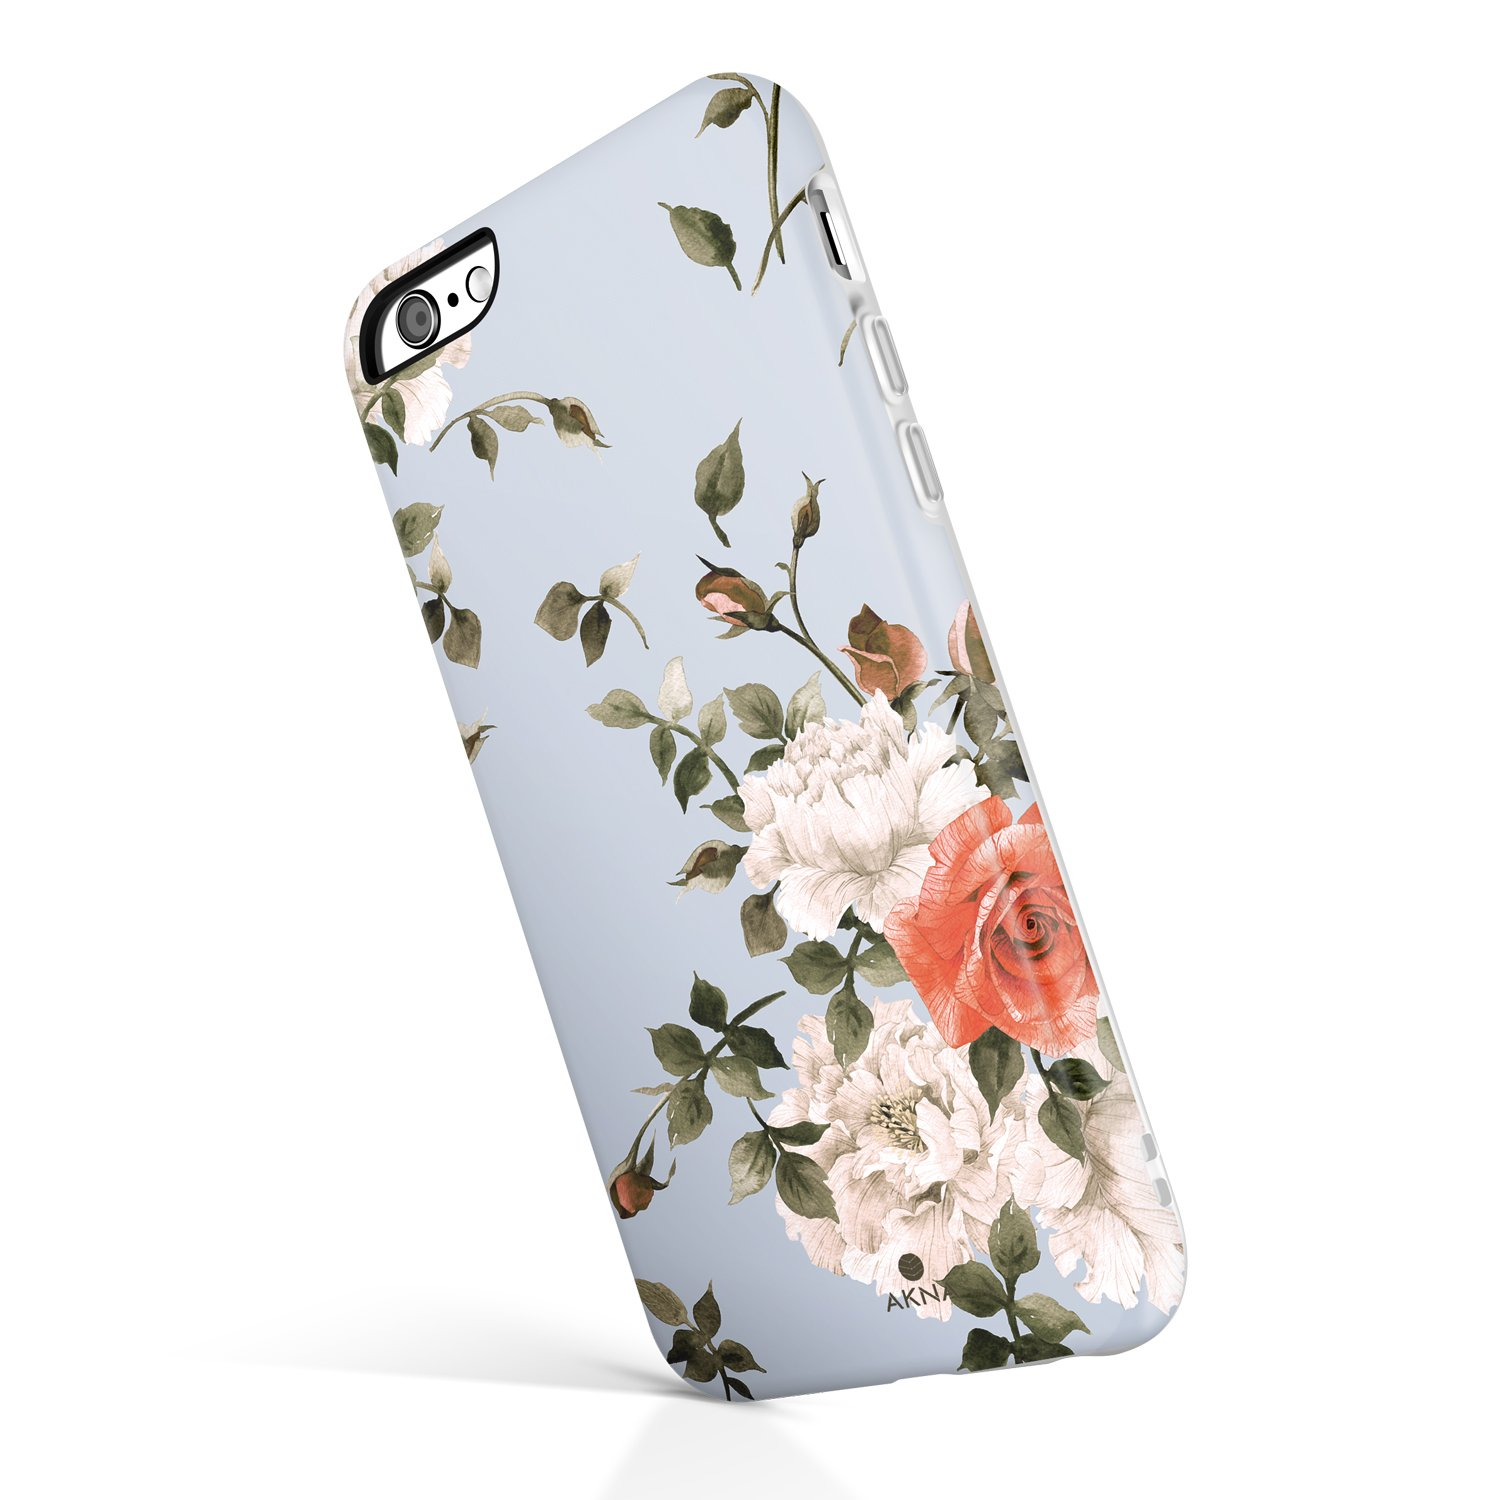 iPhone 6/6s case Floral, Akna Collection High Impact Flexible Silicon Case for Both iPhone 6 & iPhone 6s [Cashmere Blue Floral](772-U.S)